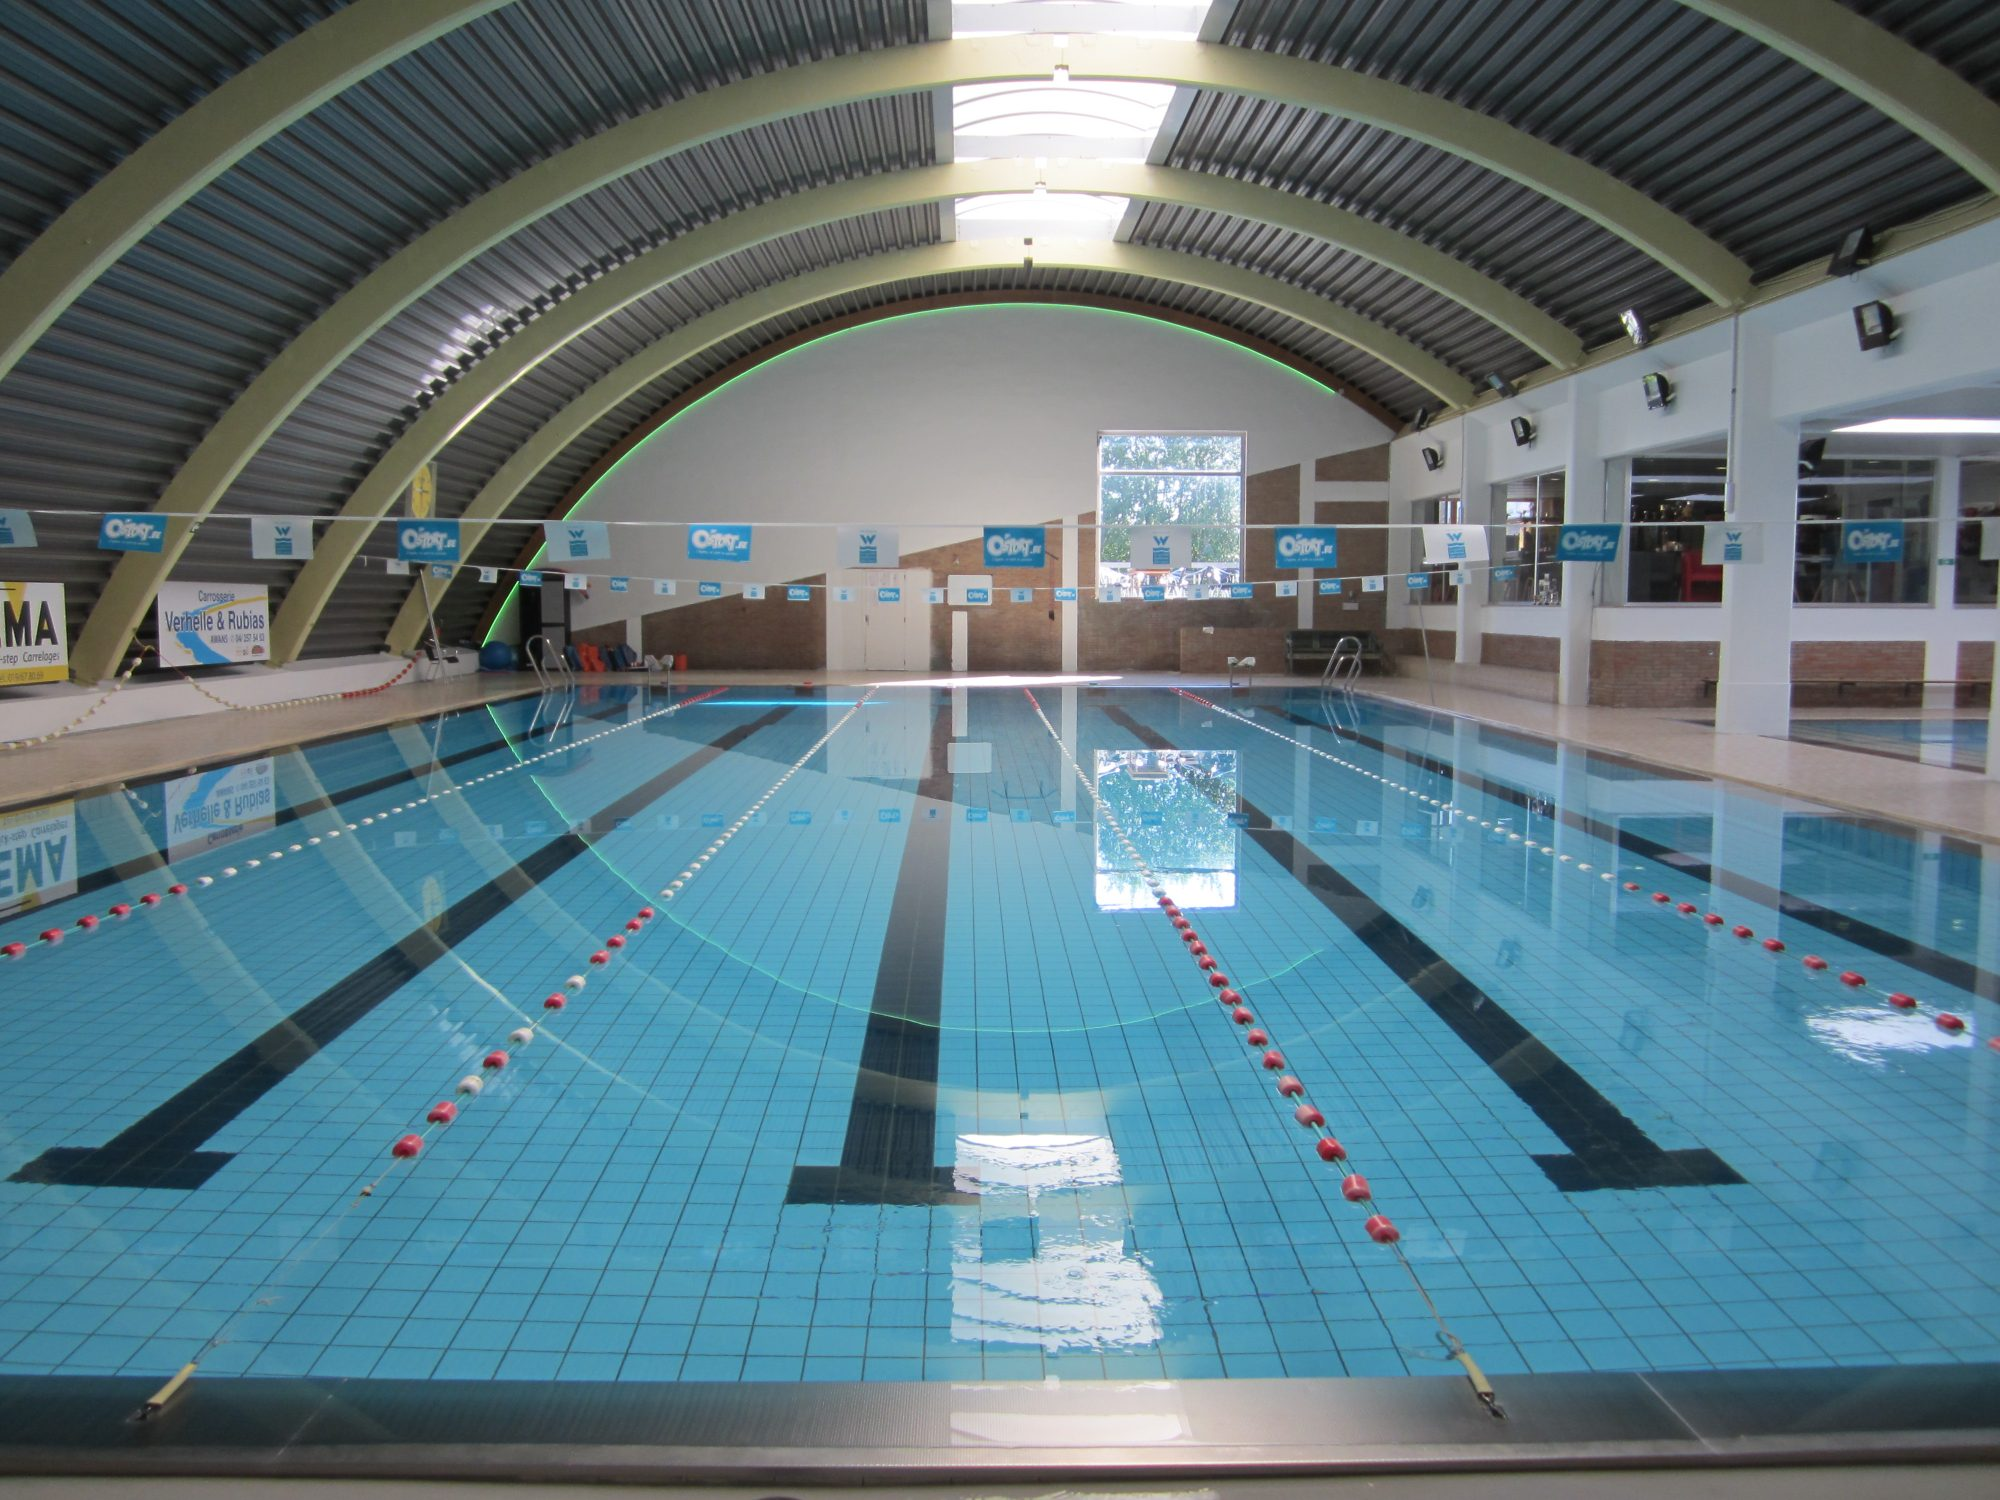 Piscine de crisn e bienvenue la piscine de crisn e for Club piscine laval heures d ouverture